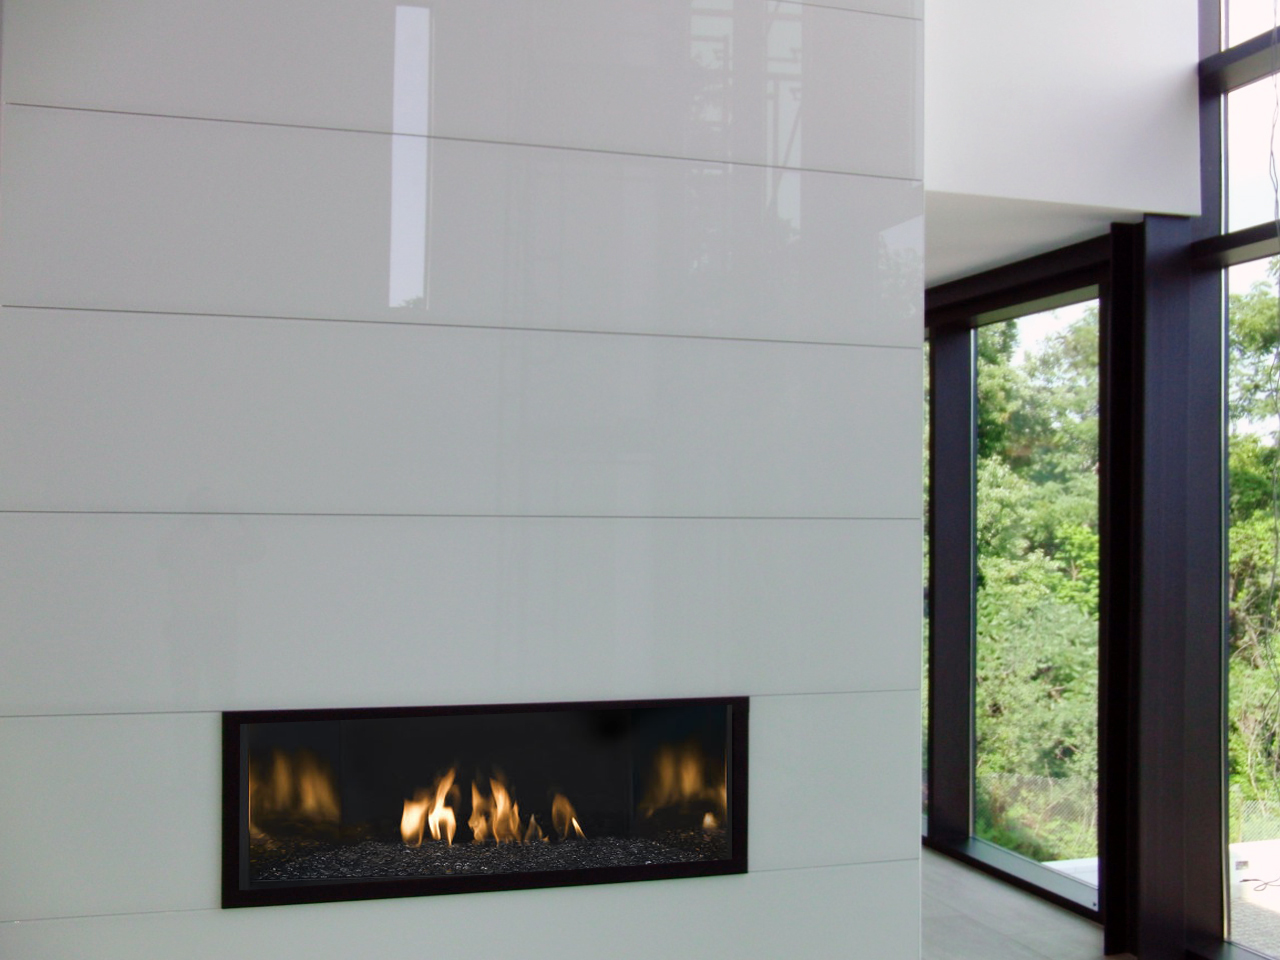 GC Backsplash 2016 01 09 White Fireplace wall panels riverside residence